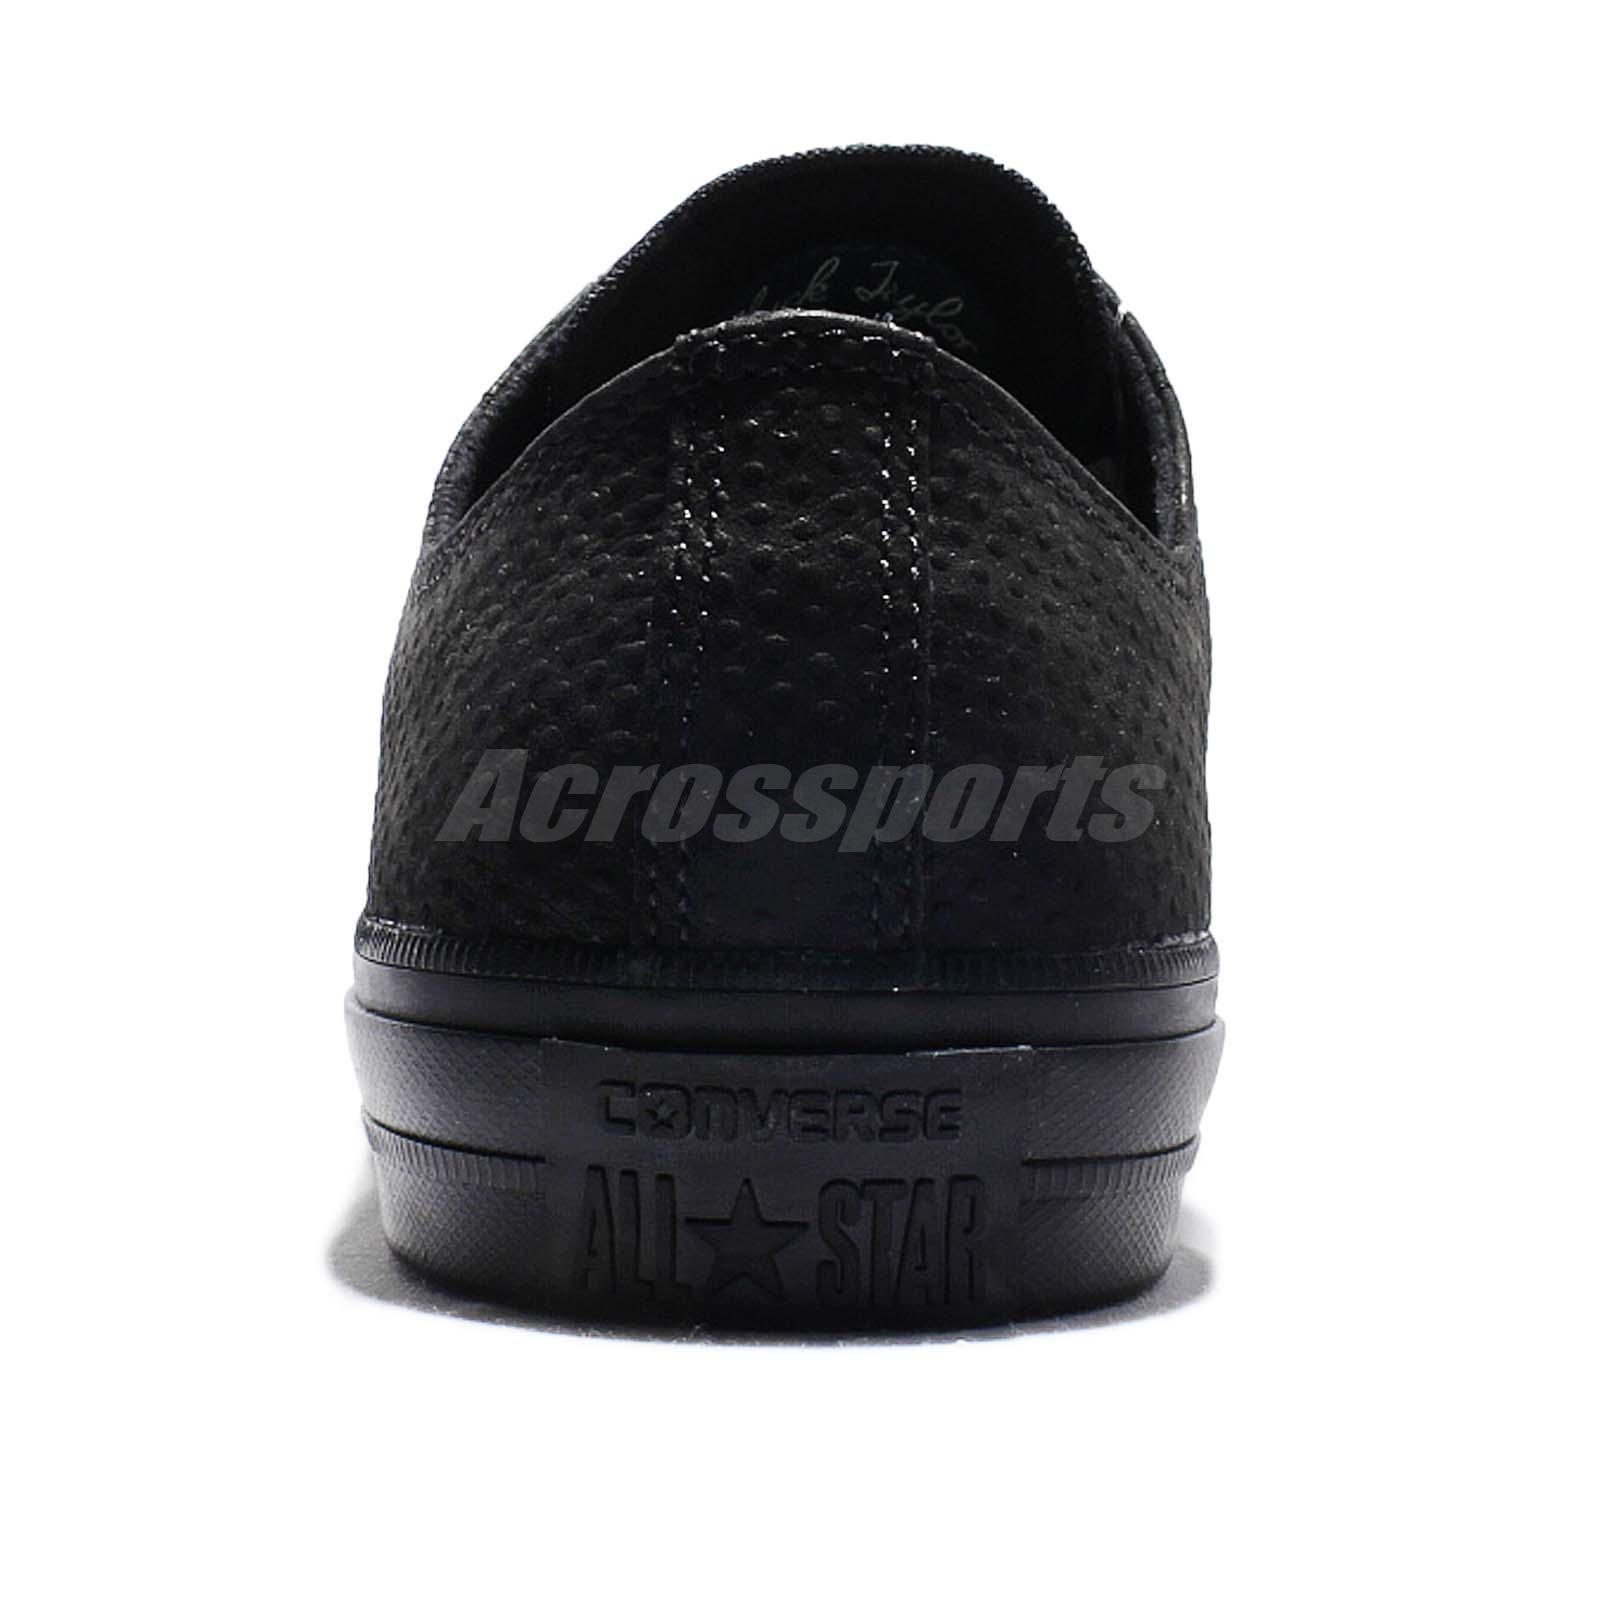 b1f431c6c004 Converse Chuck Taylor All Star II Lux Leather Low Top Black Gum Men ...